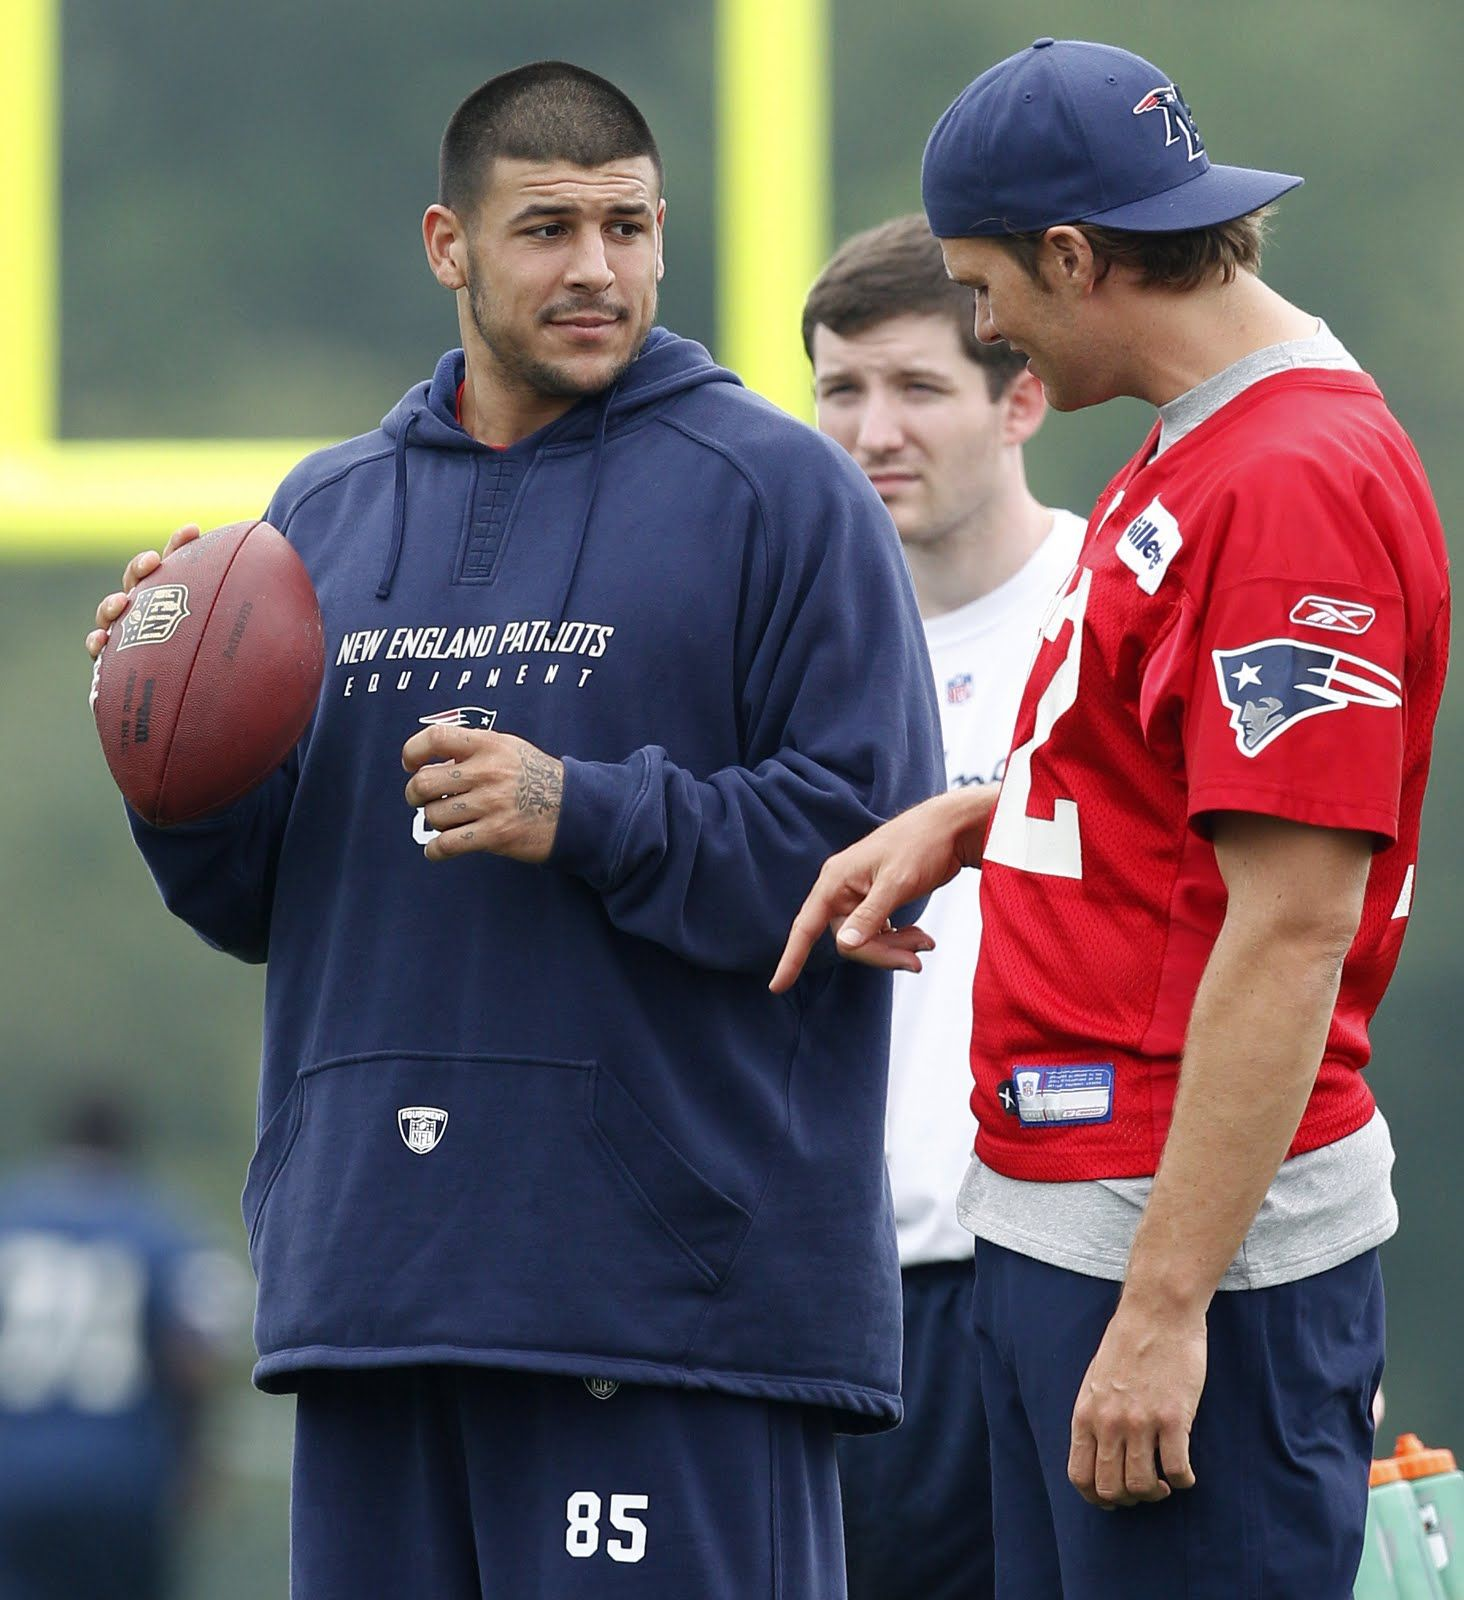 Aaron hernandez was cut by the new england patriots after he was - Aaron Hernandez At Training Camp W Tom Brady July 2011 Patriots New England